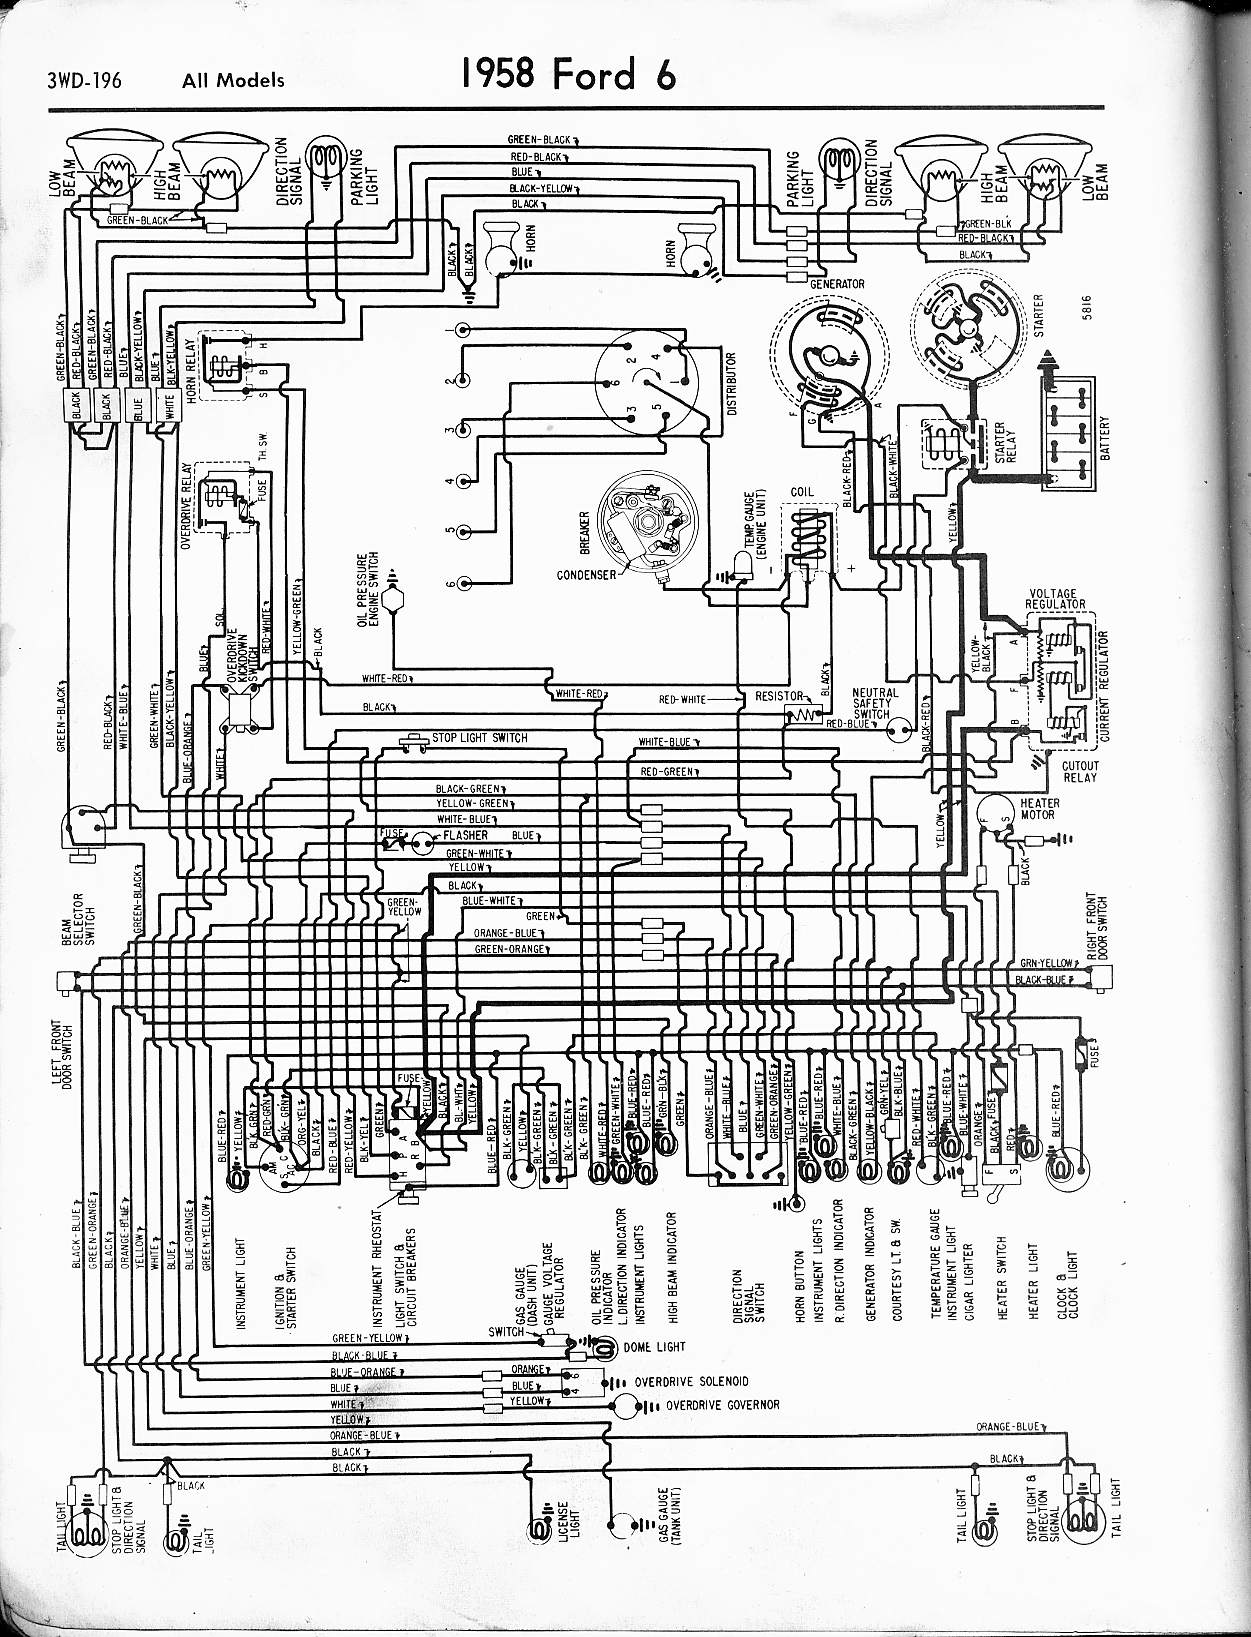 MWire5765 196 57 65 ford wiring diagrams 1965 thunderbird alternator wiring diagram at crackthecode.co